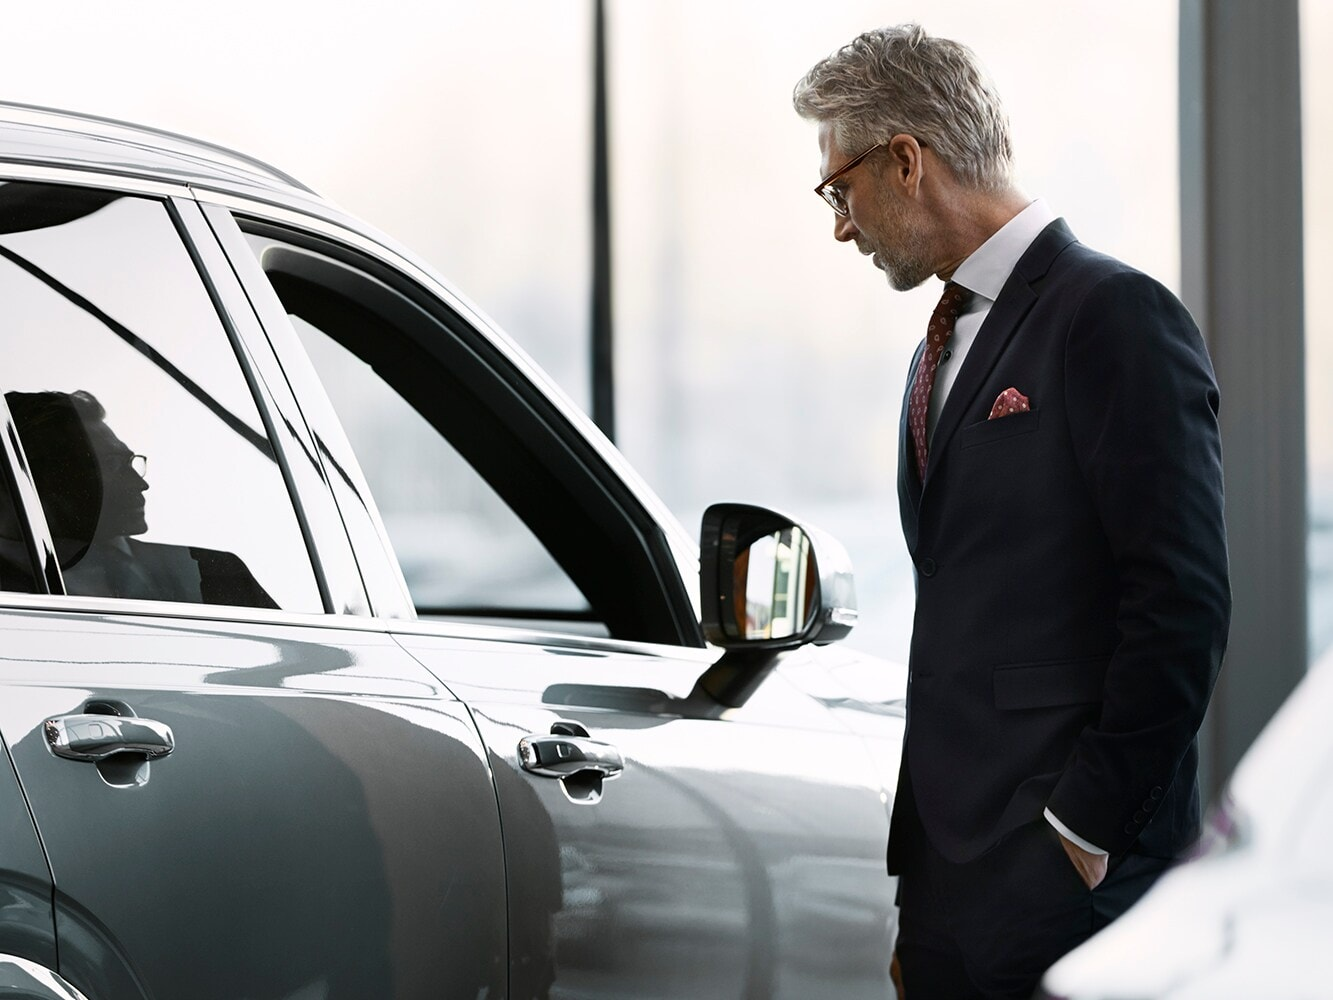 Close up side view of a man in a suit looking into the Volvo V40 passenger window